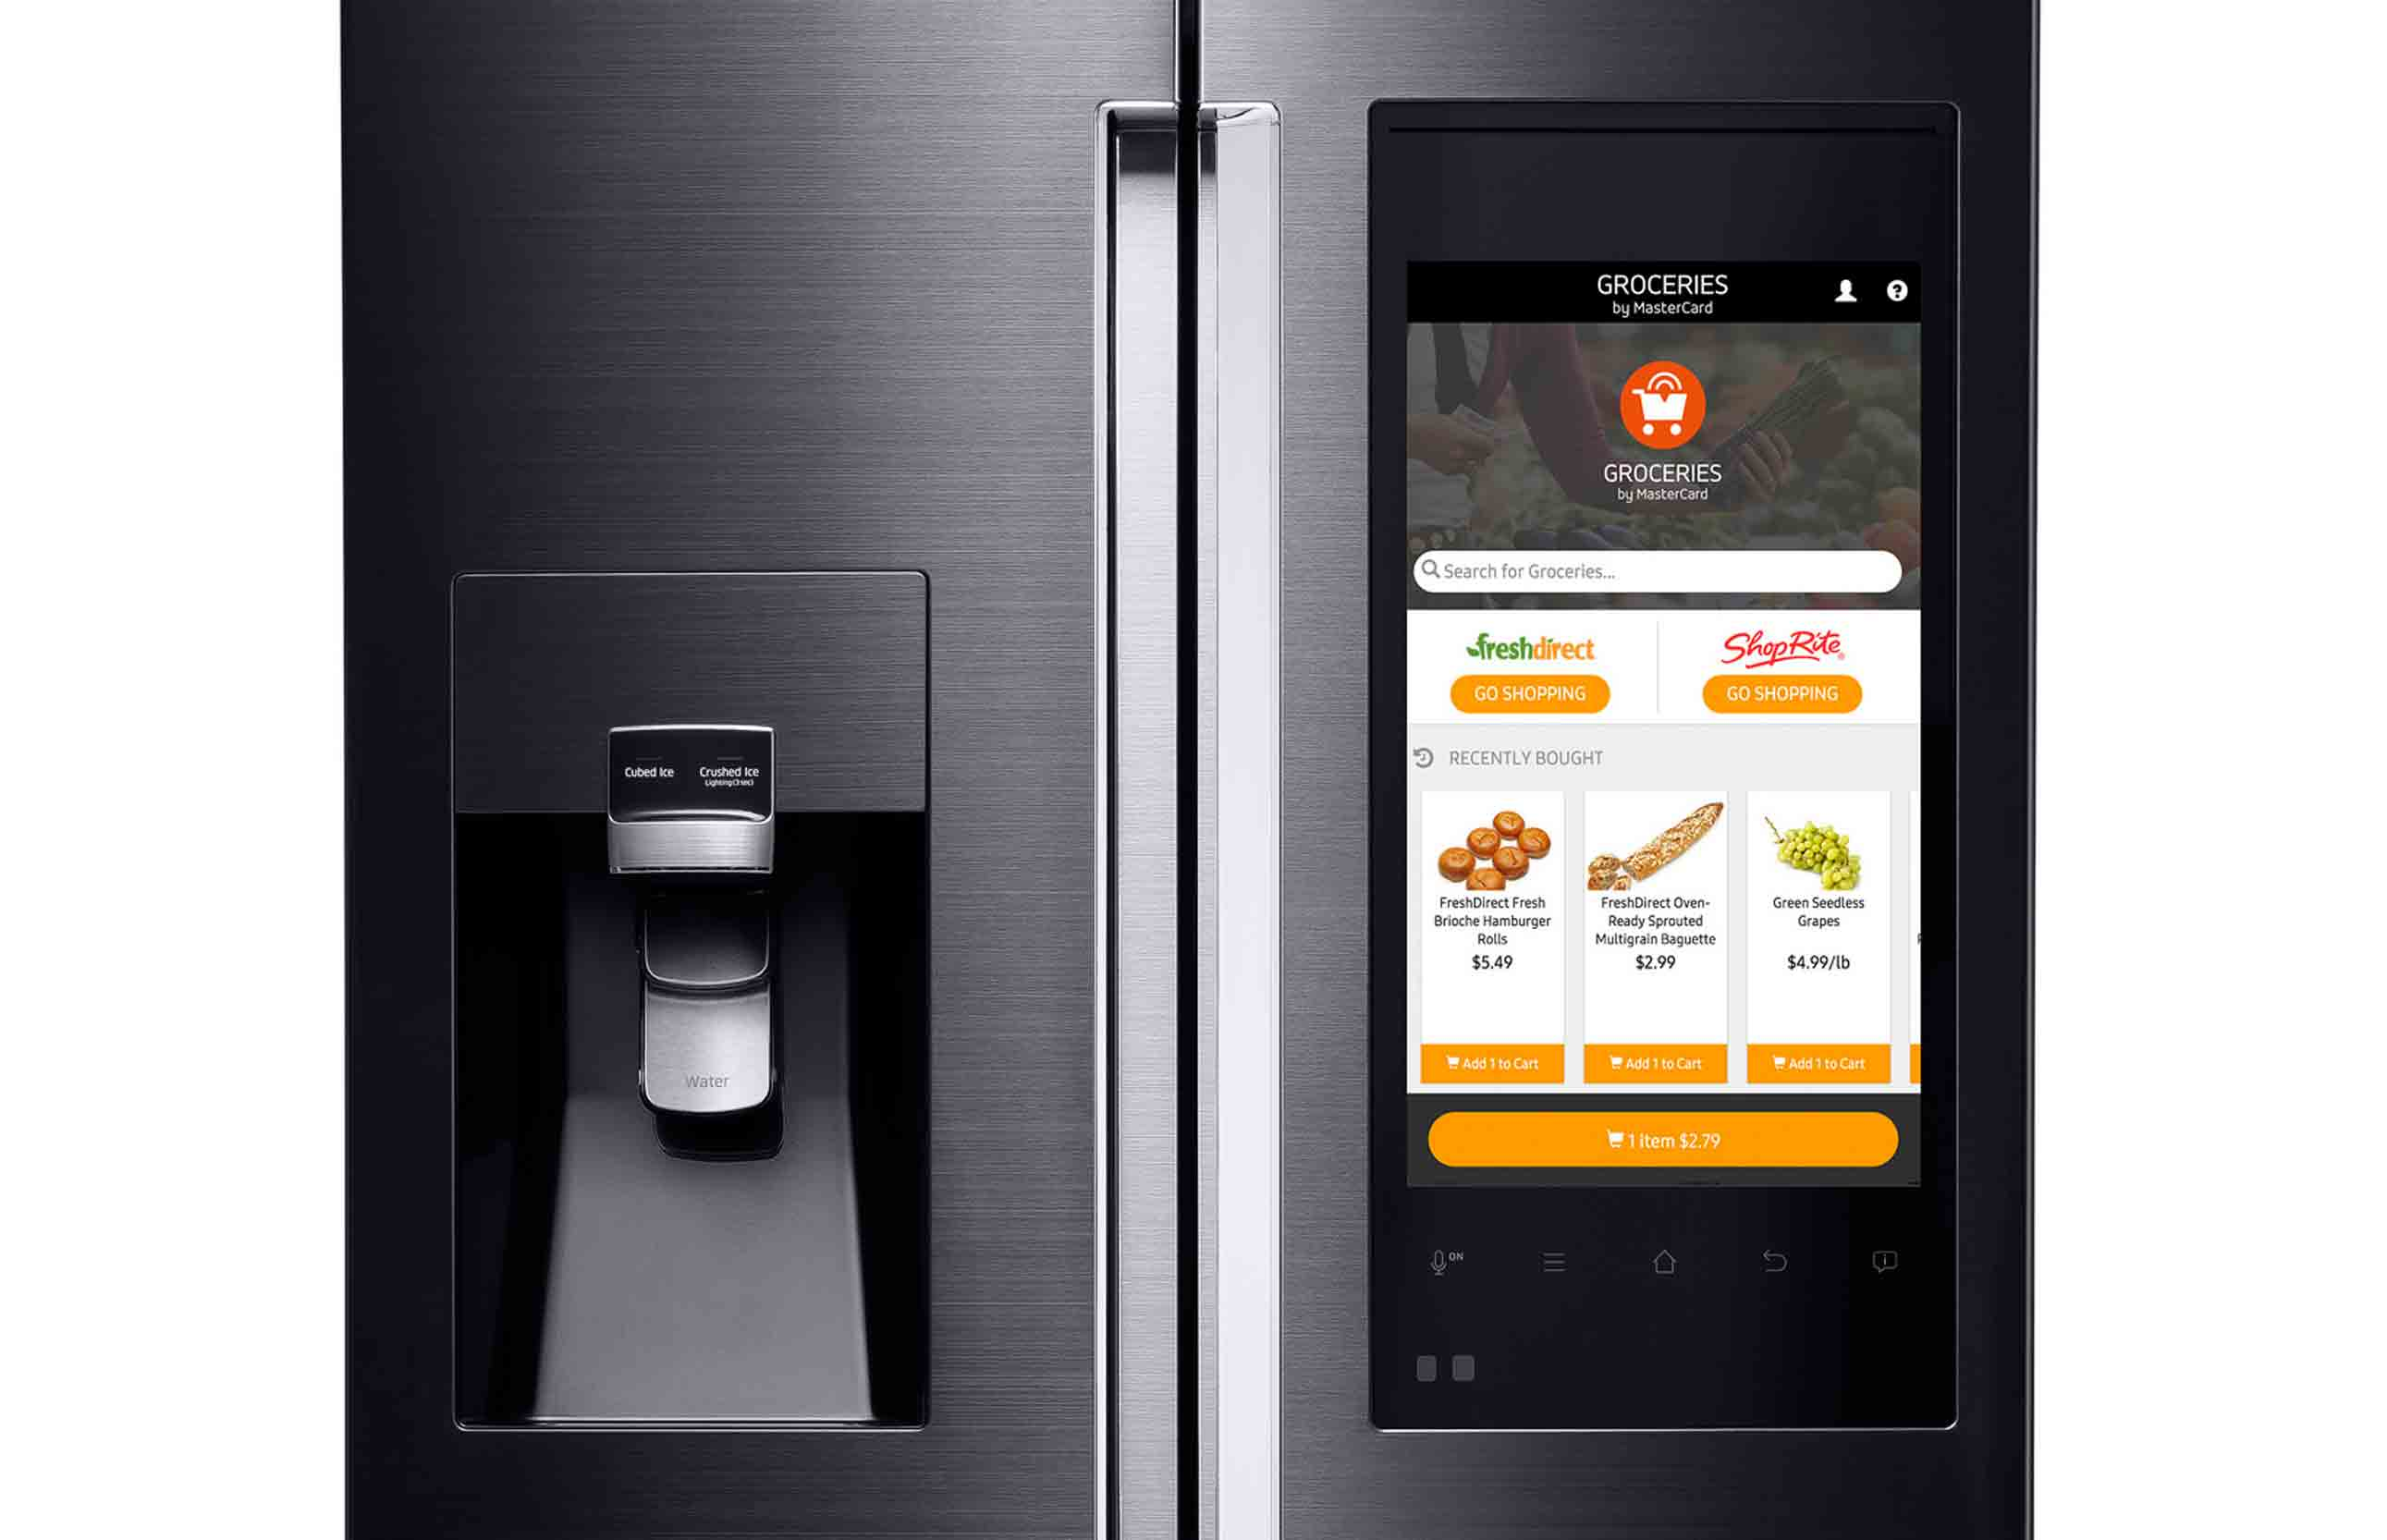 Car Loans With Bad Credit >> You Can Now Order Your Groceries Through Your Refrigerator ...